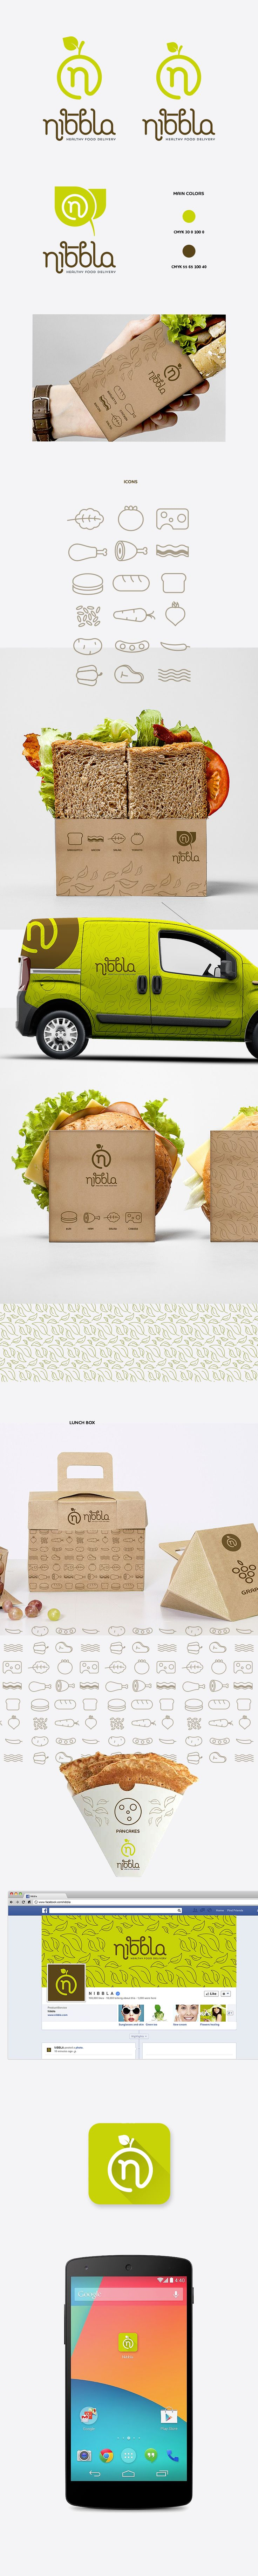 Nibbla healthy food delivery by goopanic and food app. PD